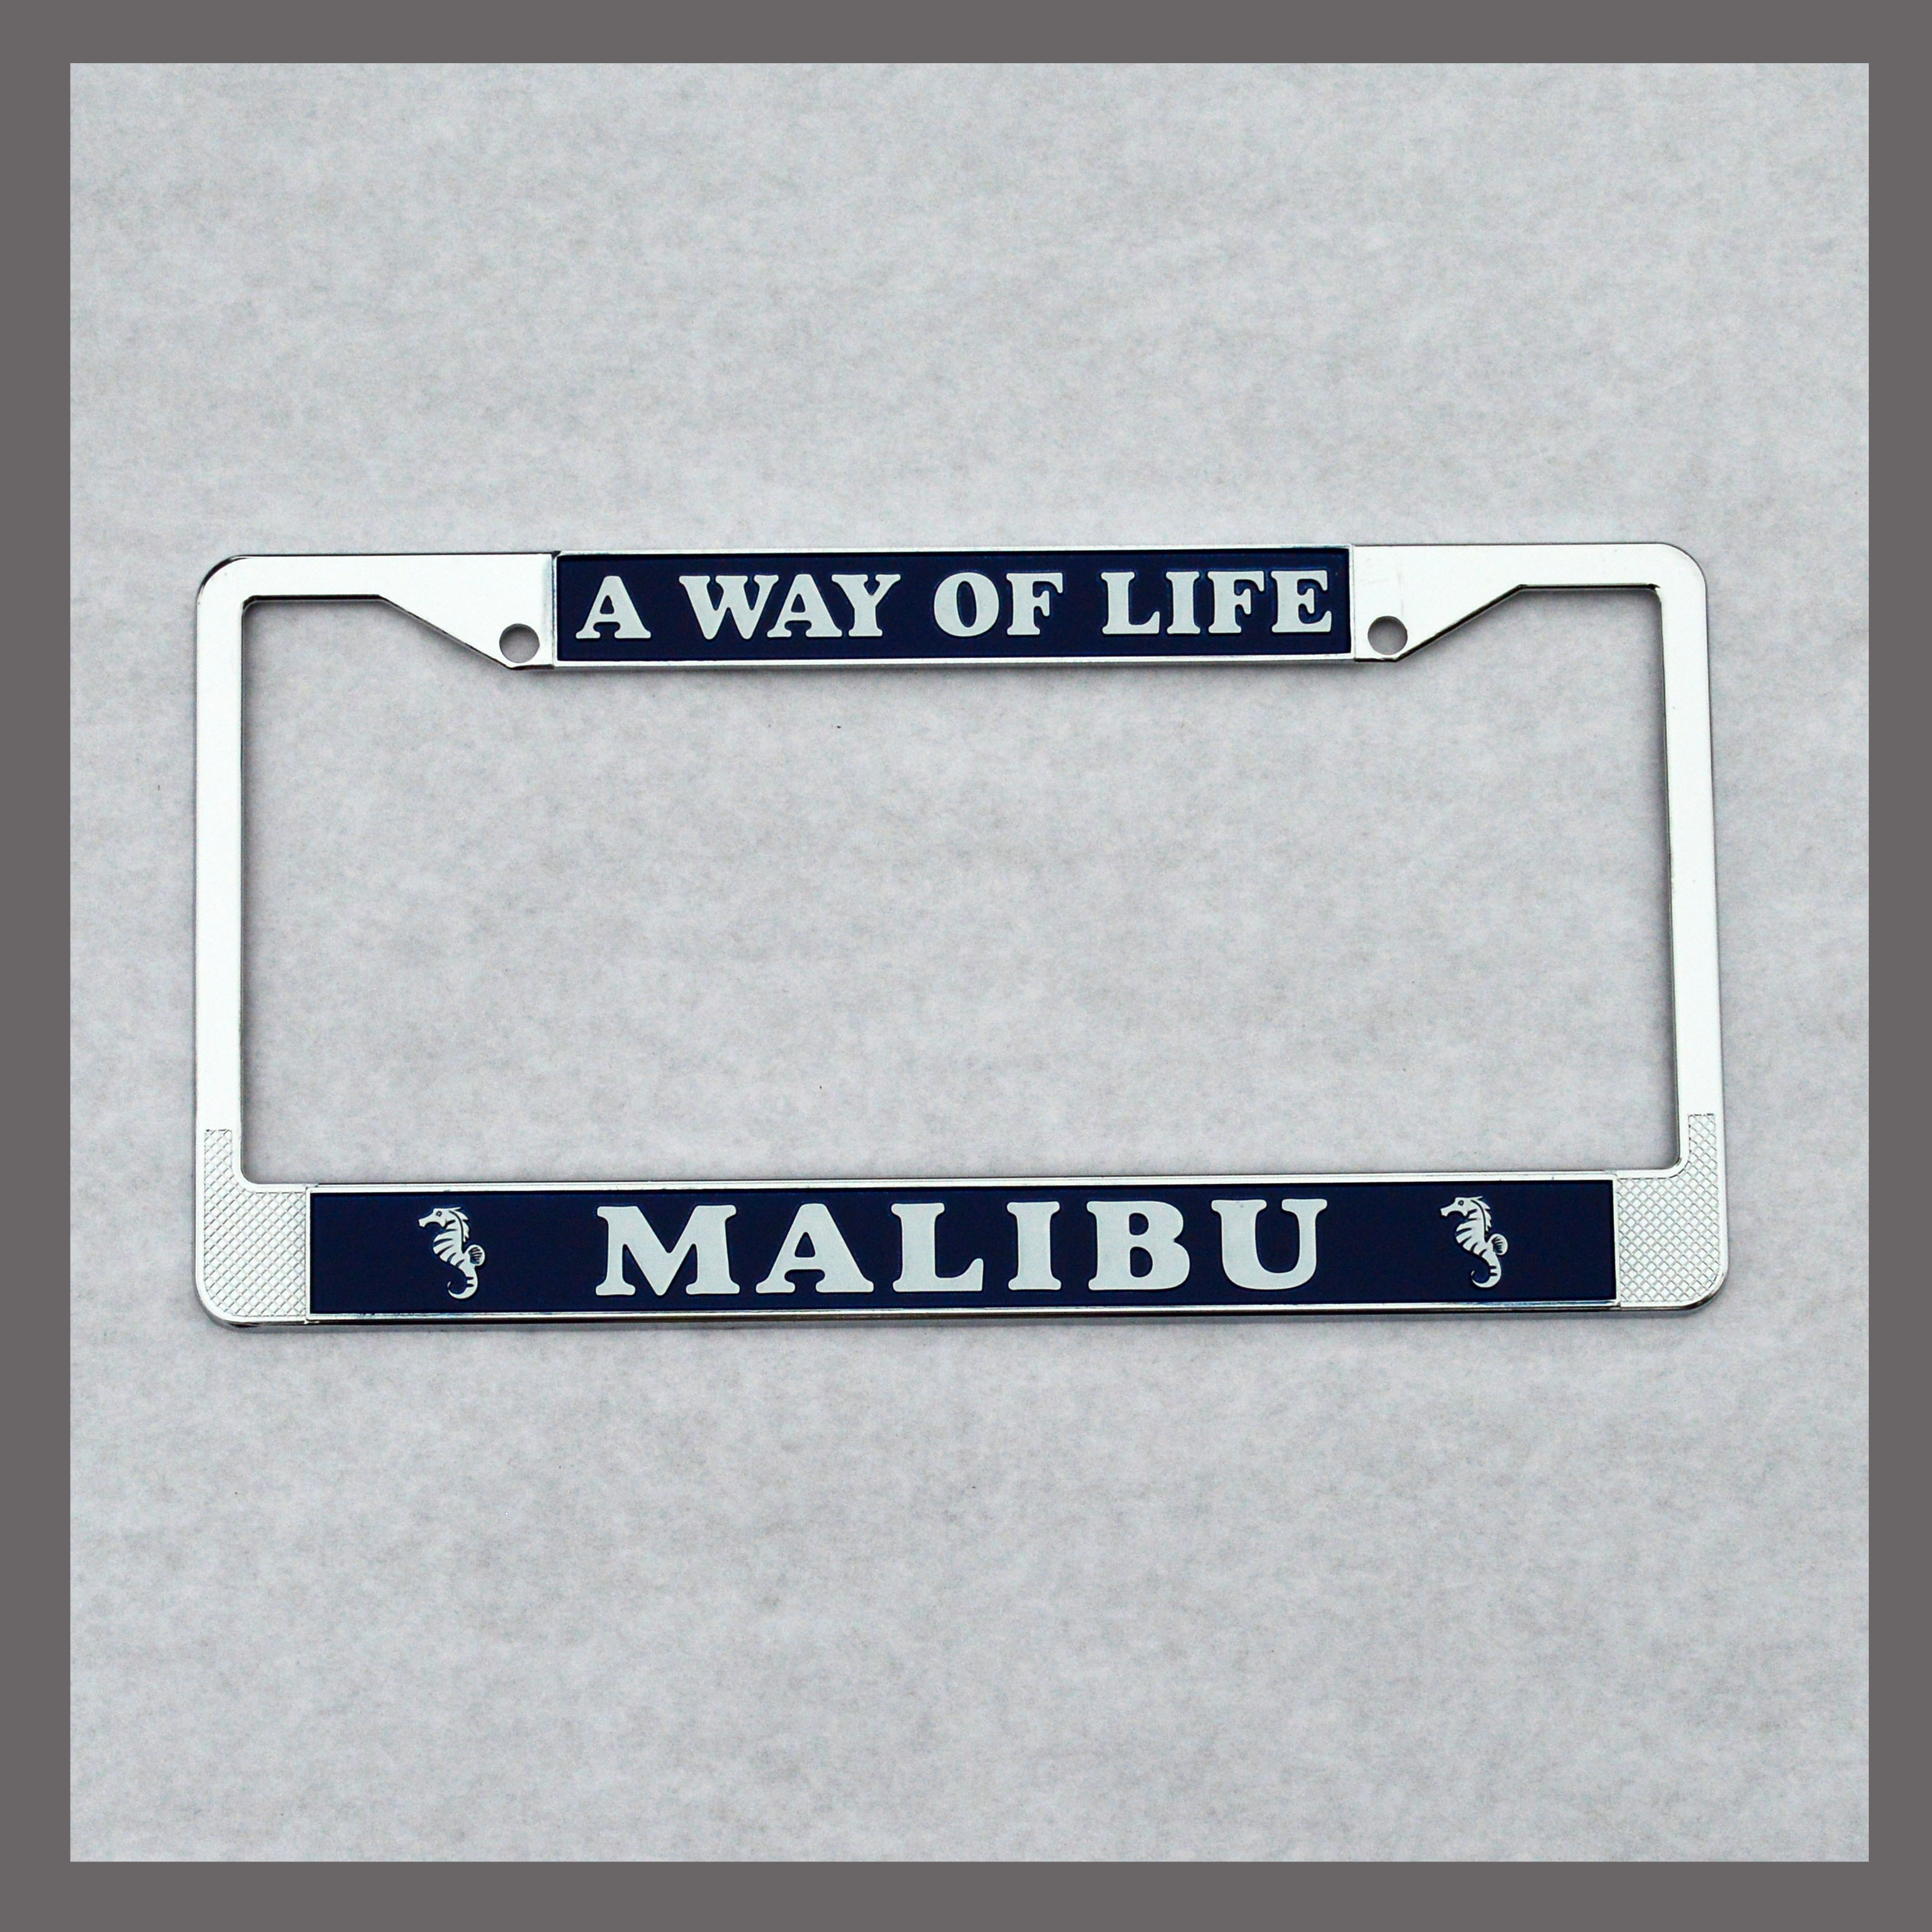 Malibu \'\'A Way of Life\'\' License Plate Frame For Sale